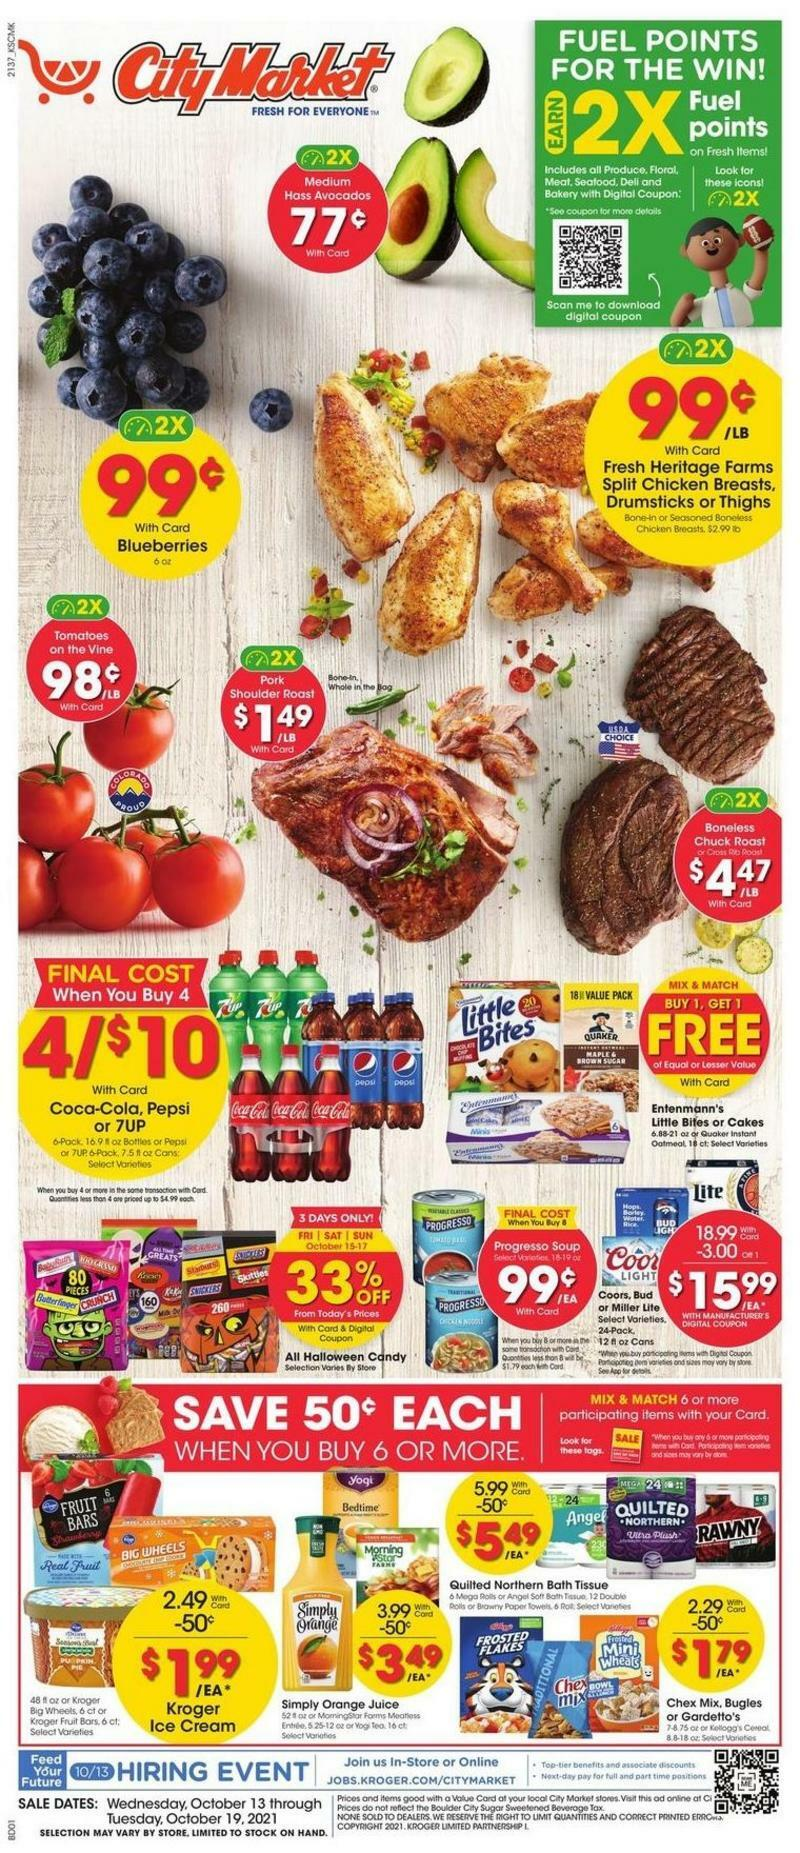 City Market Weekly Ad from October 13